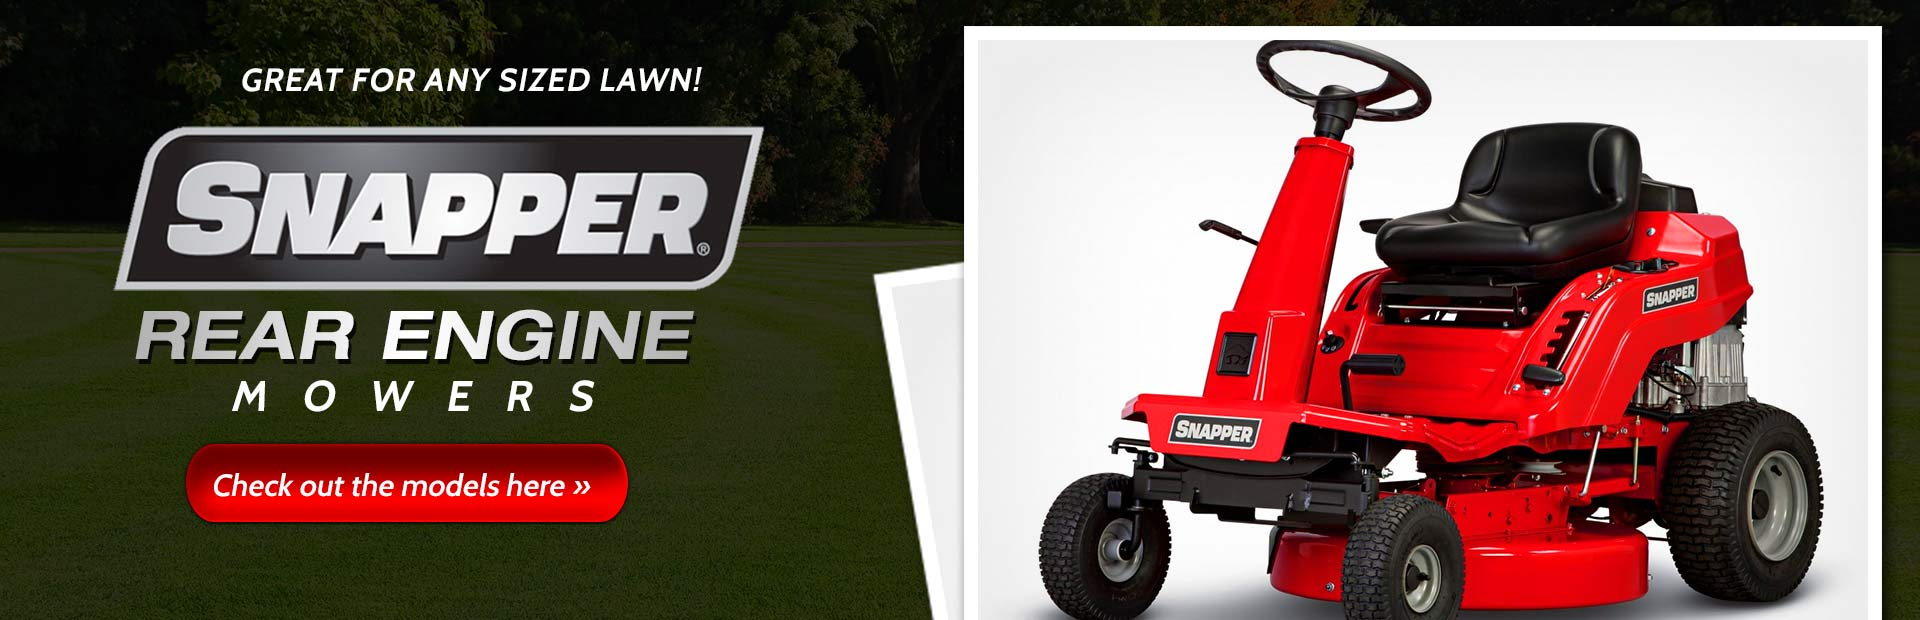 Snapper Rear Engine Mowers: Click here to view our selection!